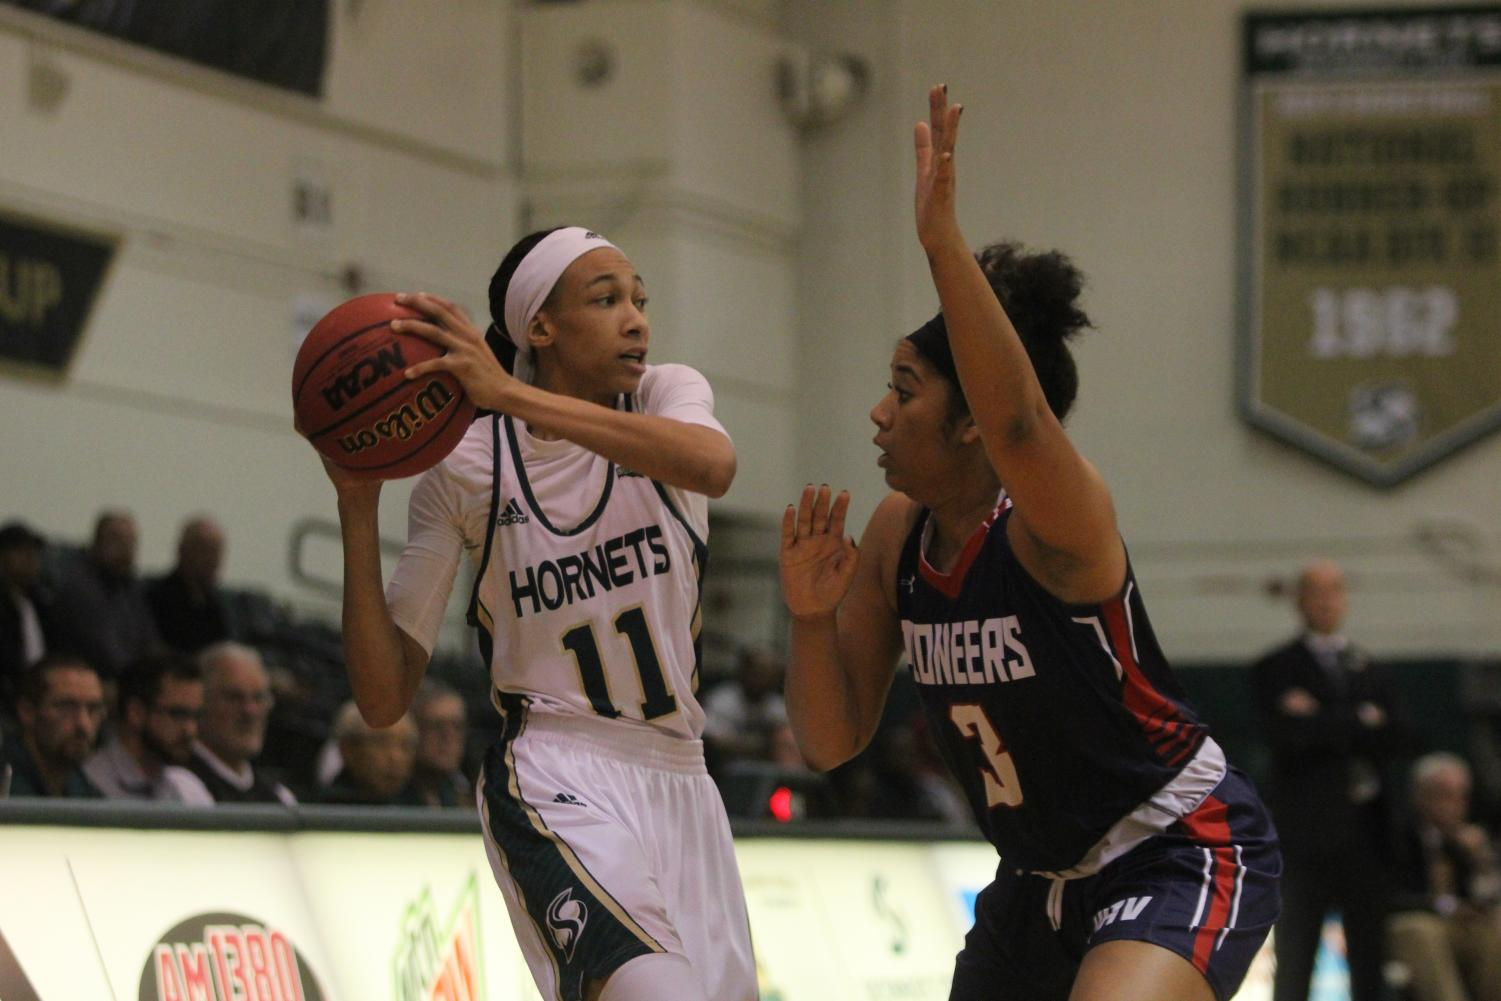 Sacramento State freshman guard 	Dana DeGraffenreid looks to pass the ball against Antelope Valley junior guard 	Samantha Earl Wednesday, Dec. 6 at the Nest. The Hornets defeated the Pioneers 95-62 in their home opener.